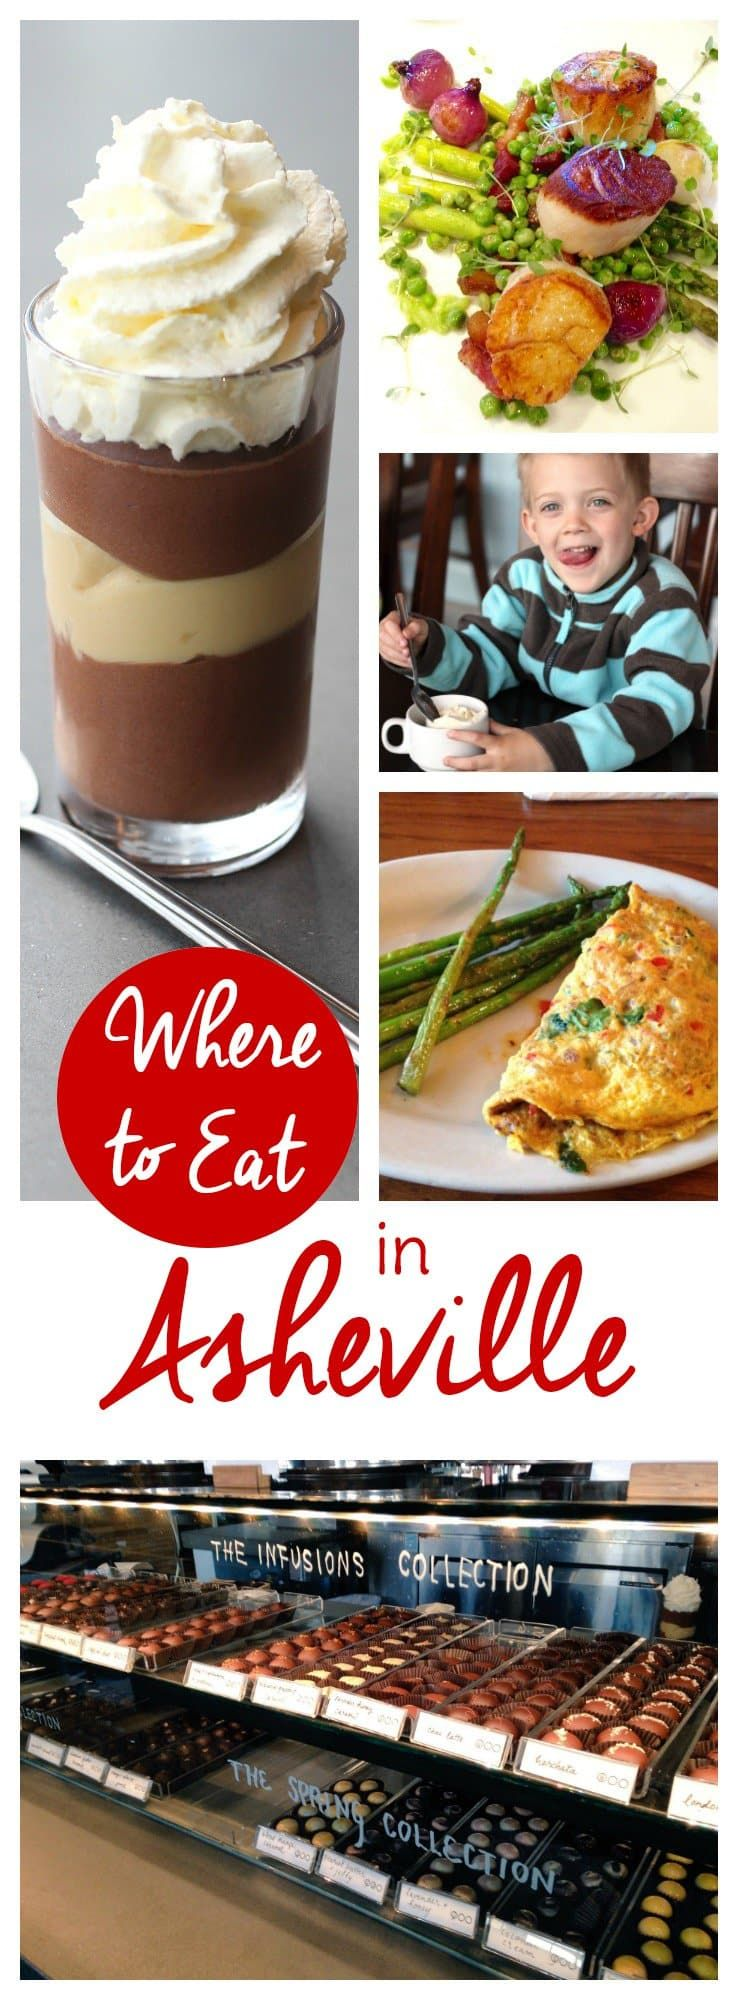 Wondering where to eat in Asheville? Let me be your guide